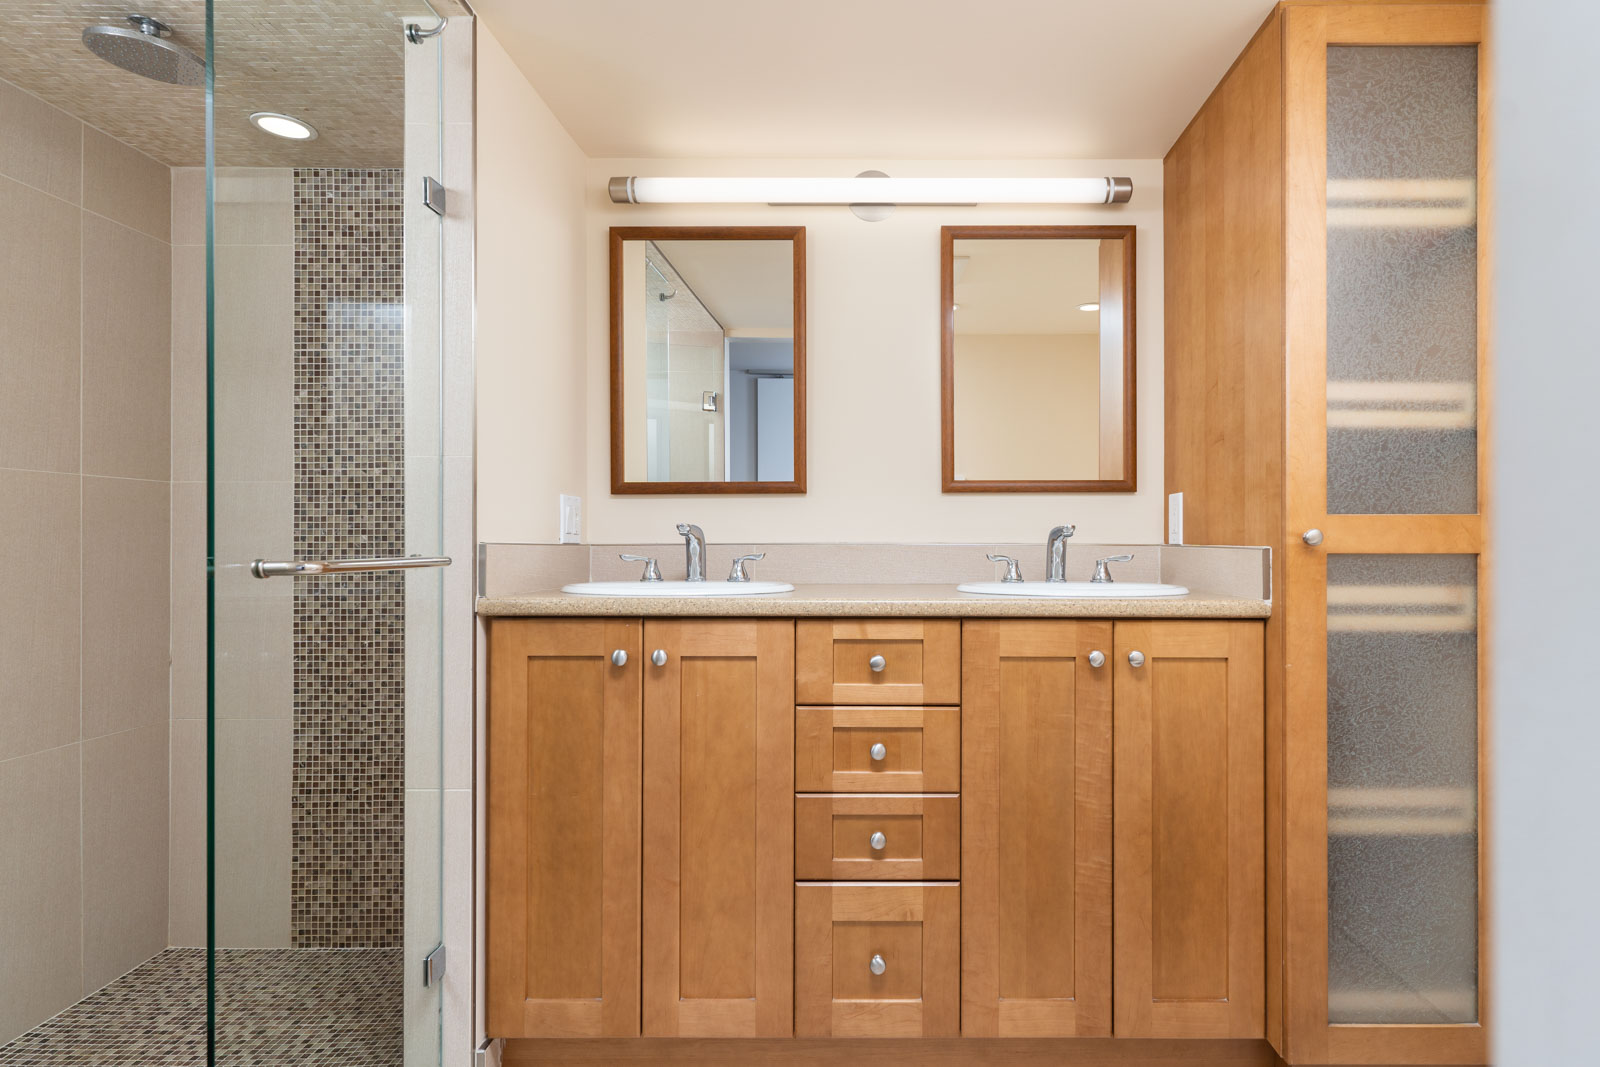 Beautiful wood finishing in the bathroom with his/her sink